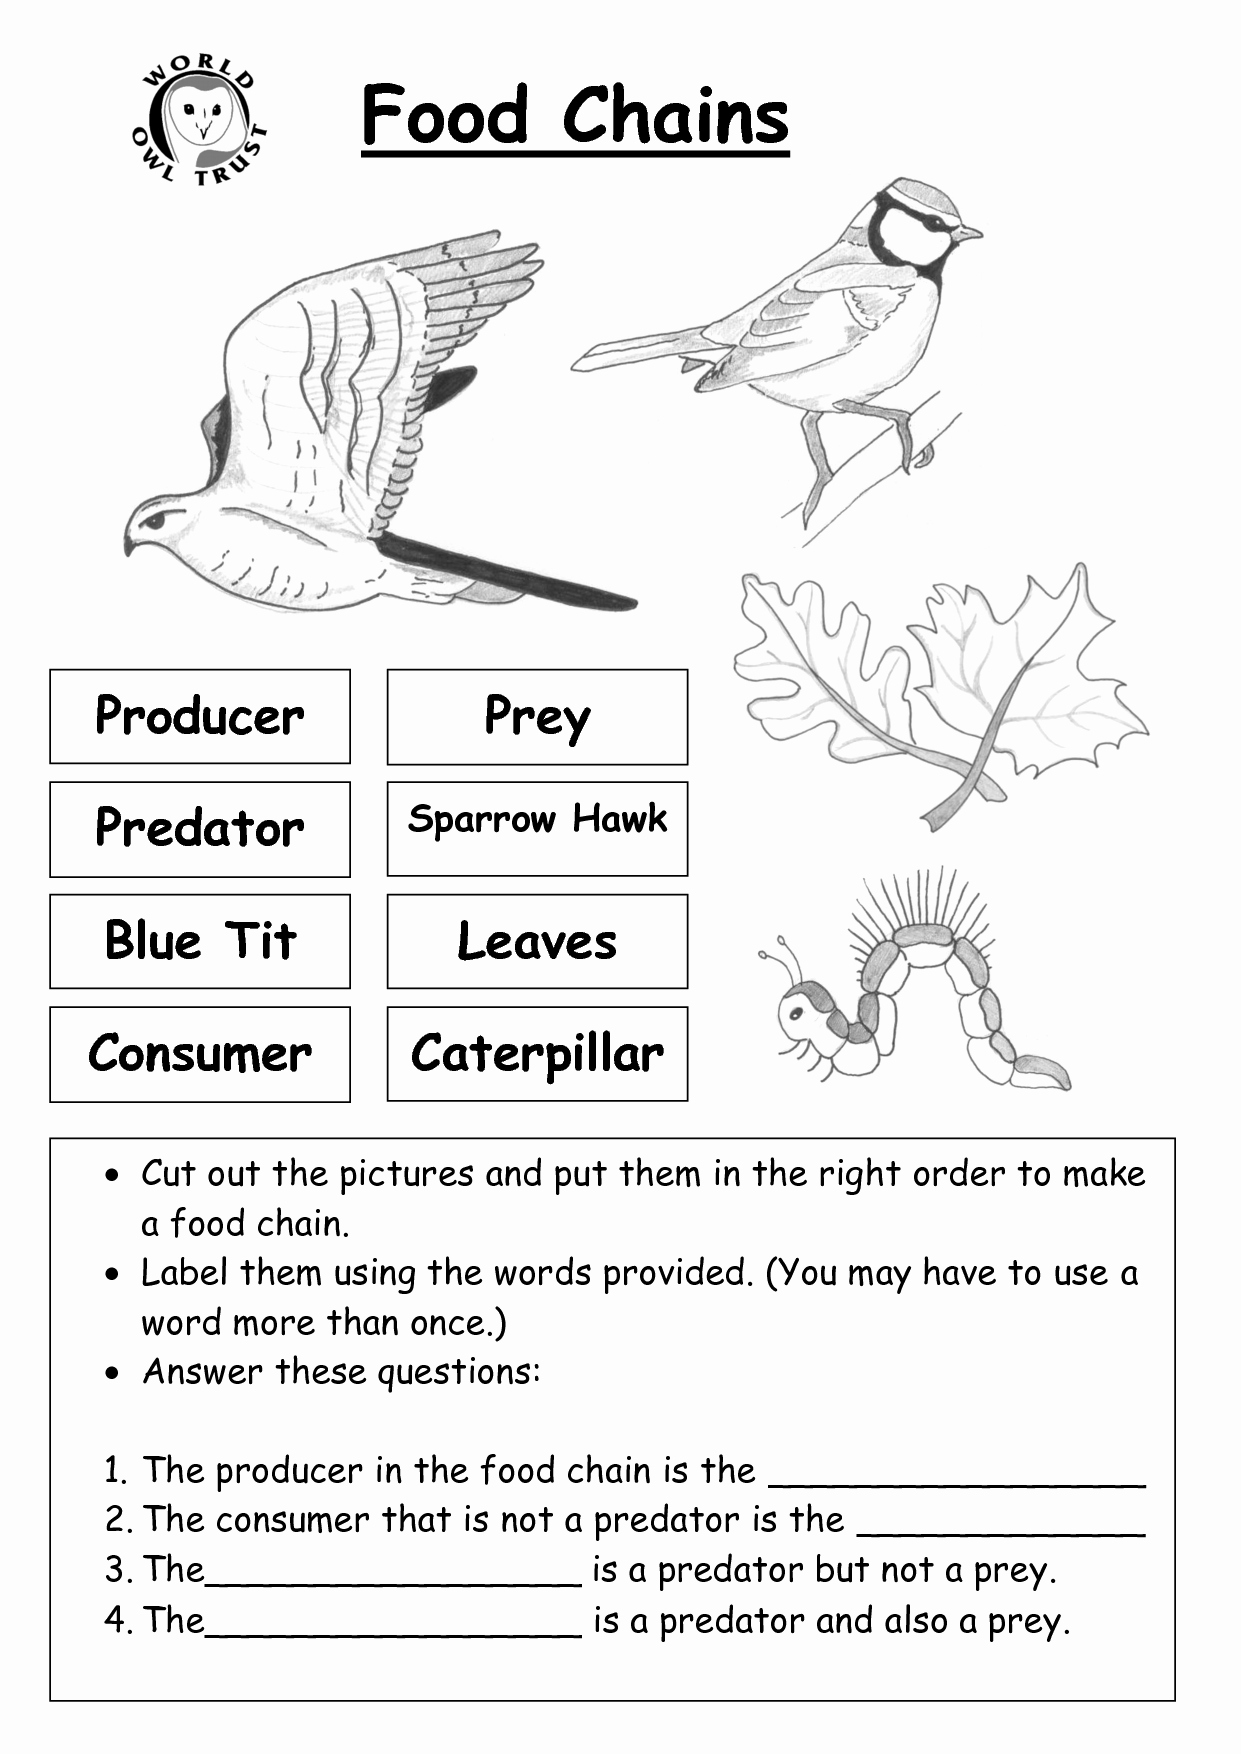 Food Web Worksheet Answers Lovely Question Worksheet Category Page 2 Worksheeto